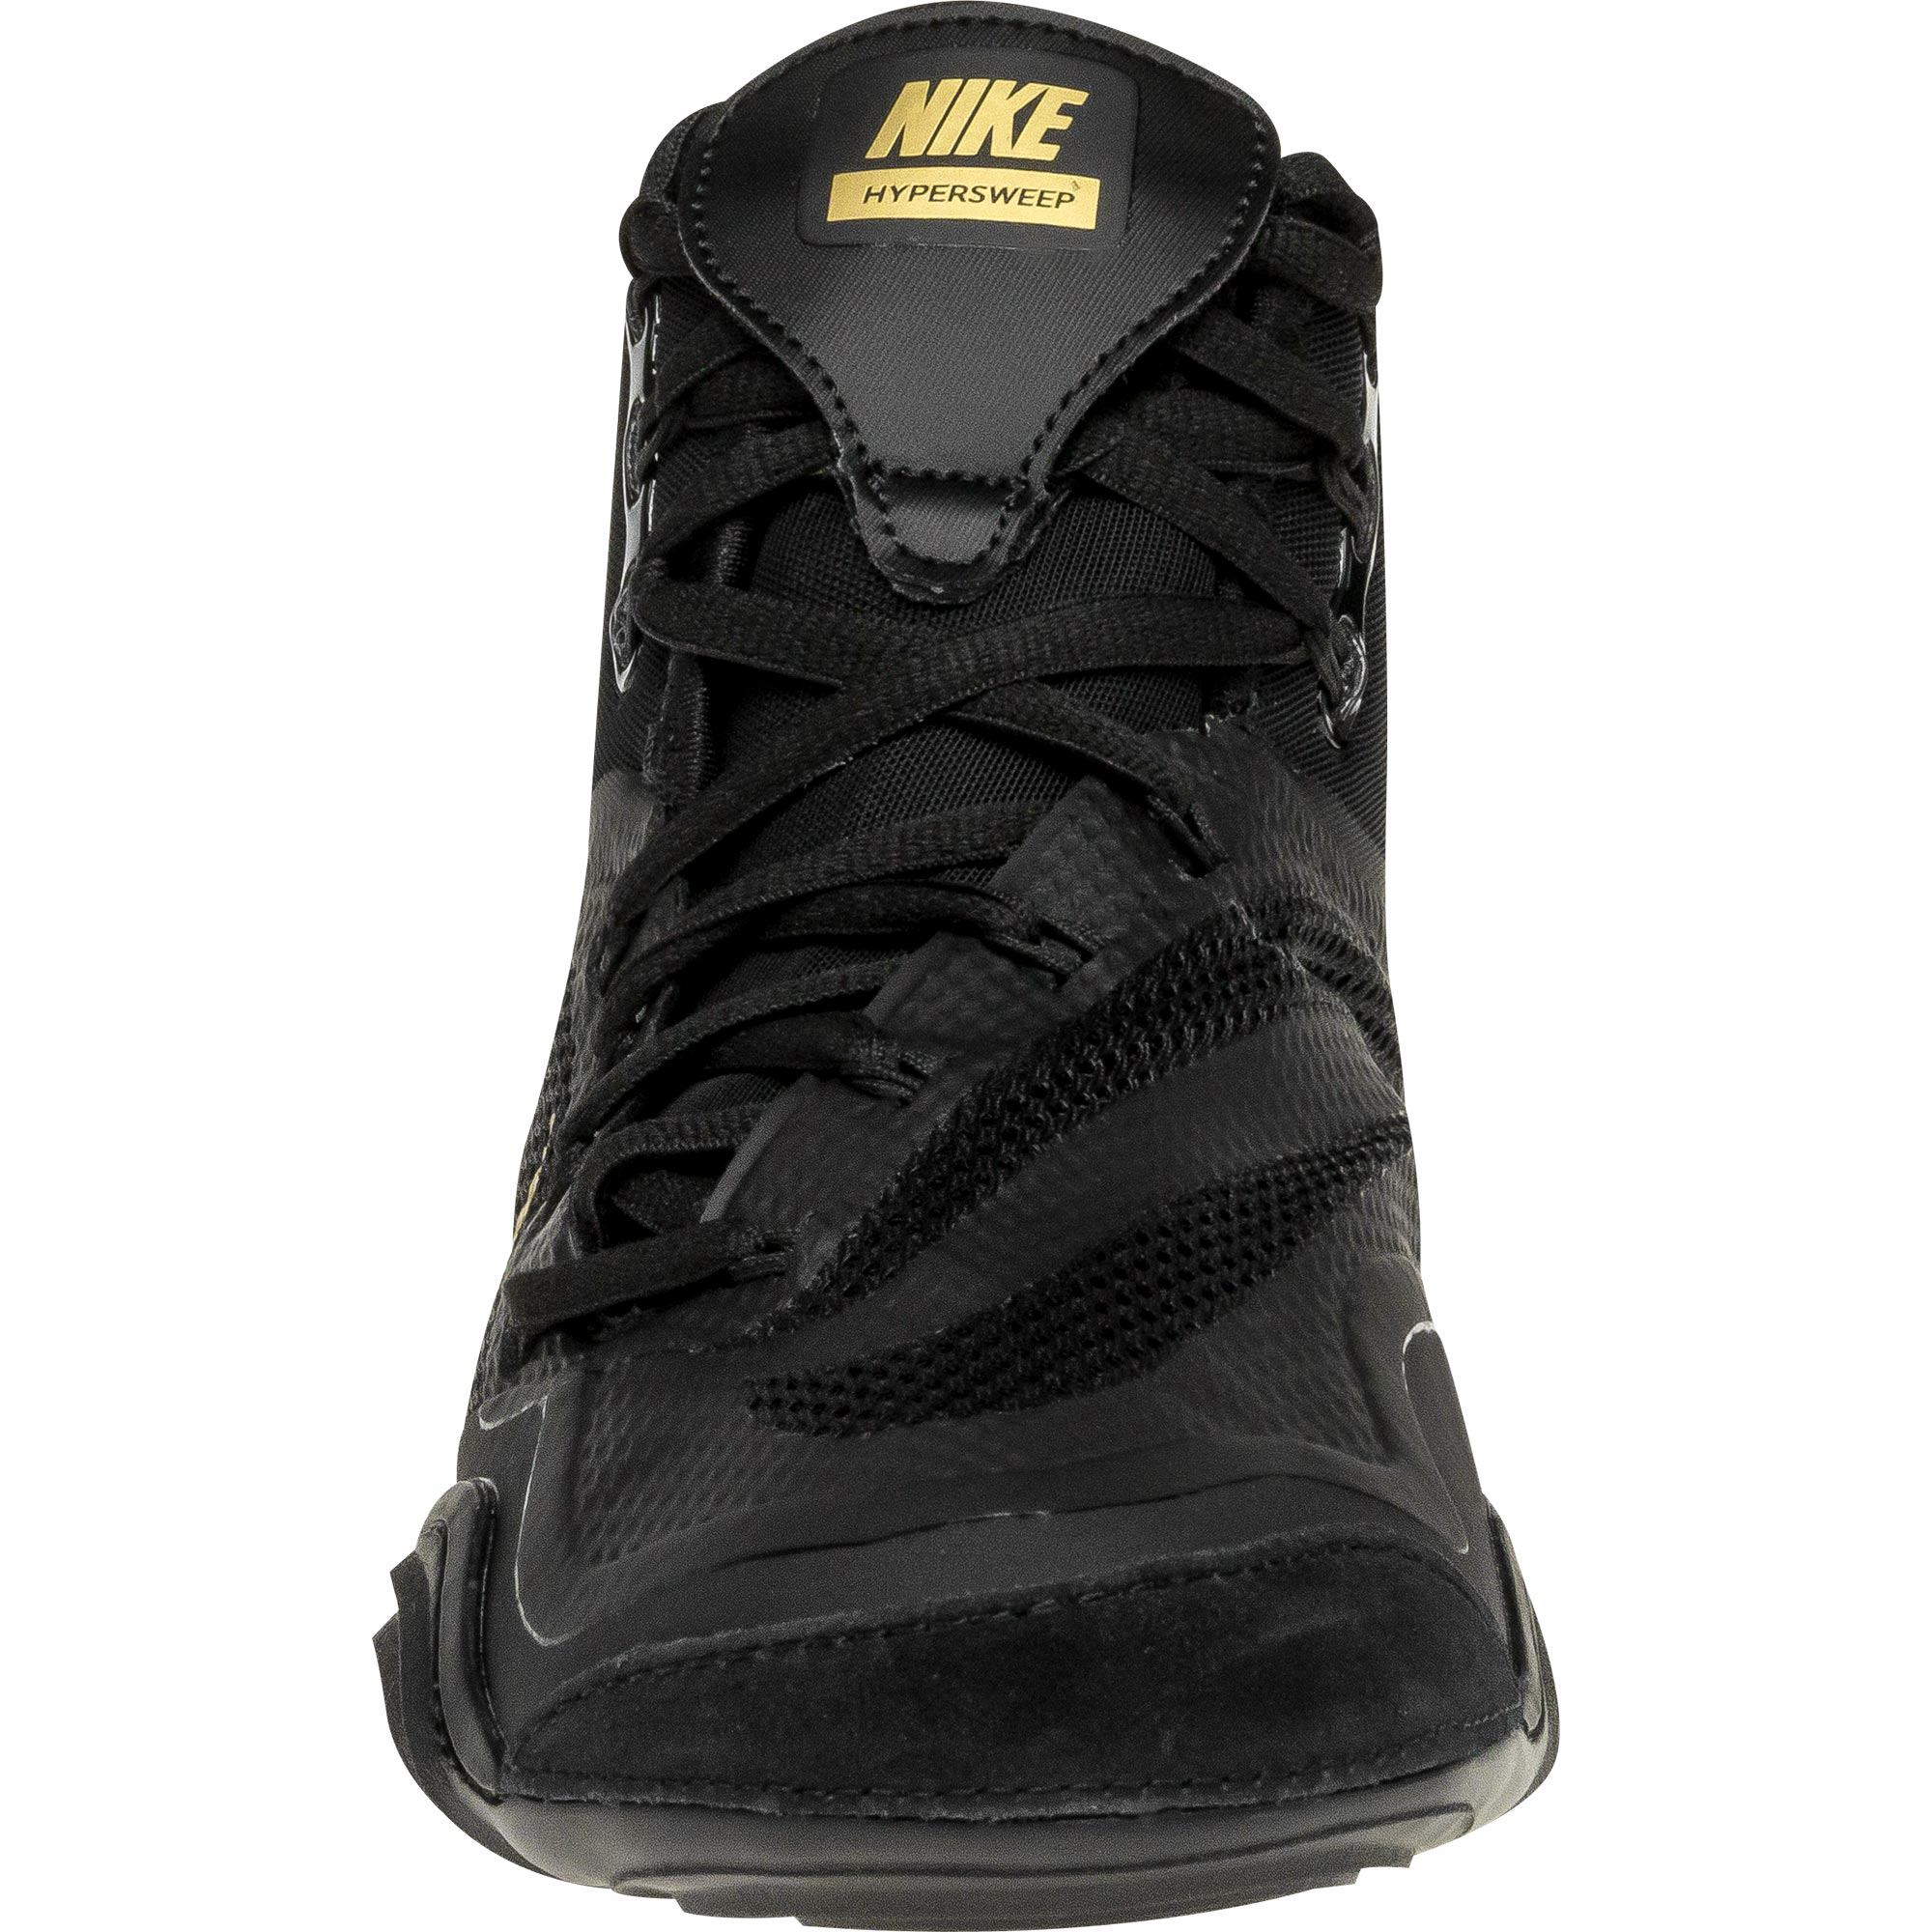 the latest be769 d5f74 Nike Hypersweep Black Gold Black Gold mainNike Hypersweep Black Gold Black  Gold ...